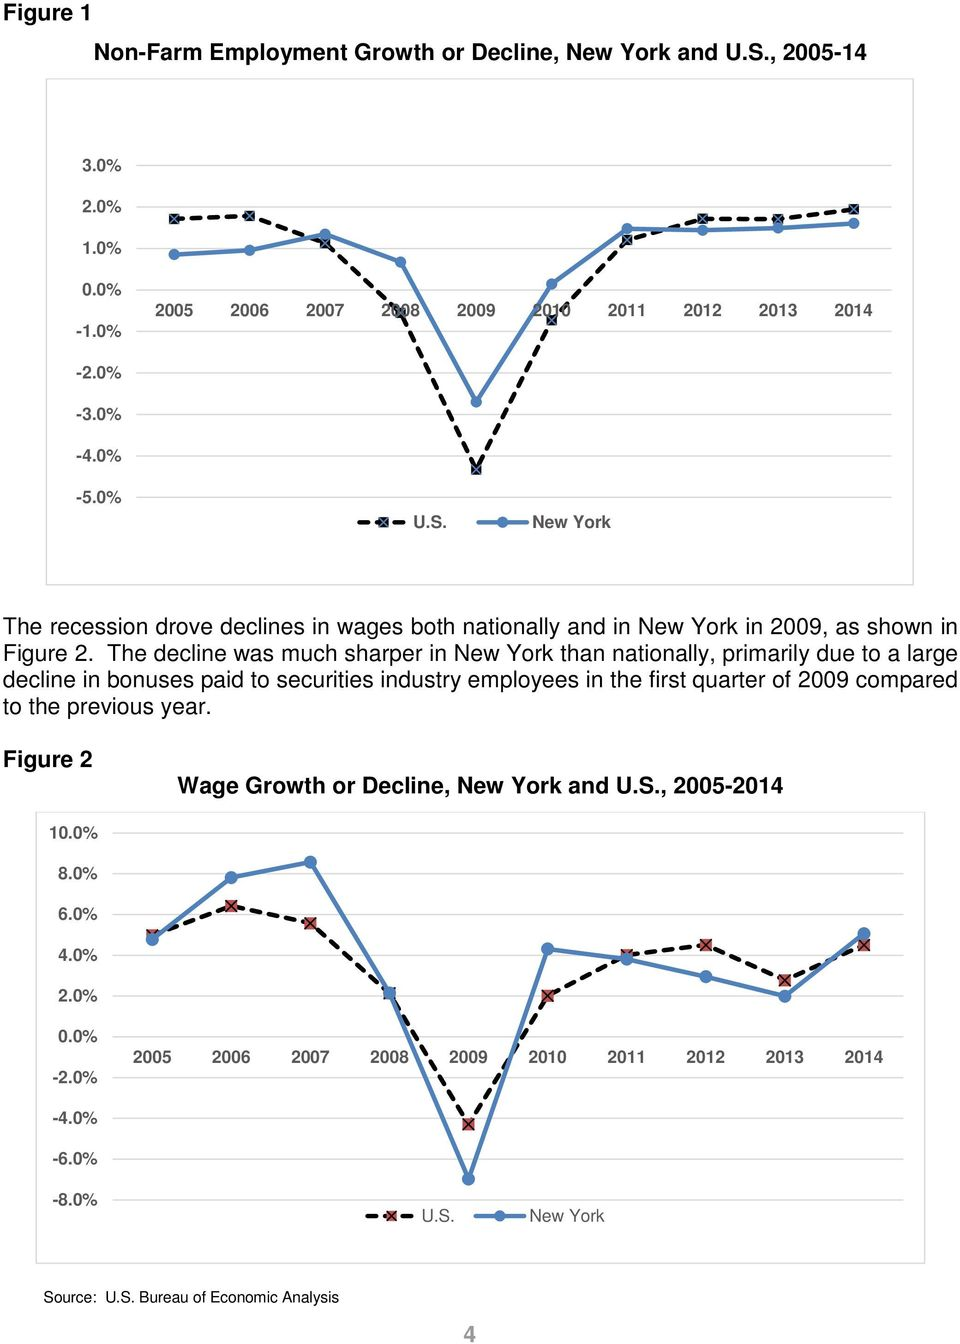 to the previous year. Figure 2 Wage Growth or Decline, New York and U.S., 2005-2014 10.0% 8.0% 6.0% 4.0% 2.0% 0.0% -2.0% 2005 2006 2007 2008 2009 2010 2011 2012 2013 2014-4.